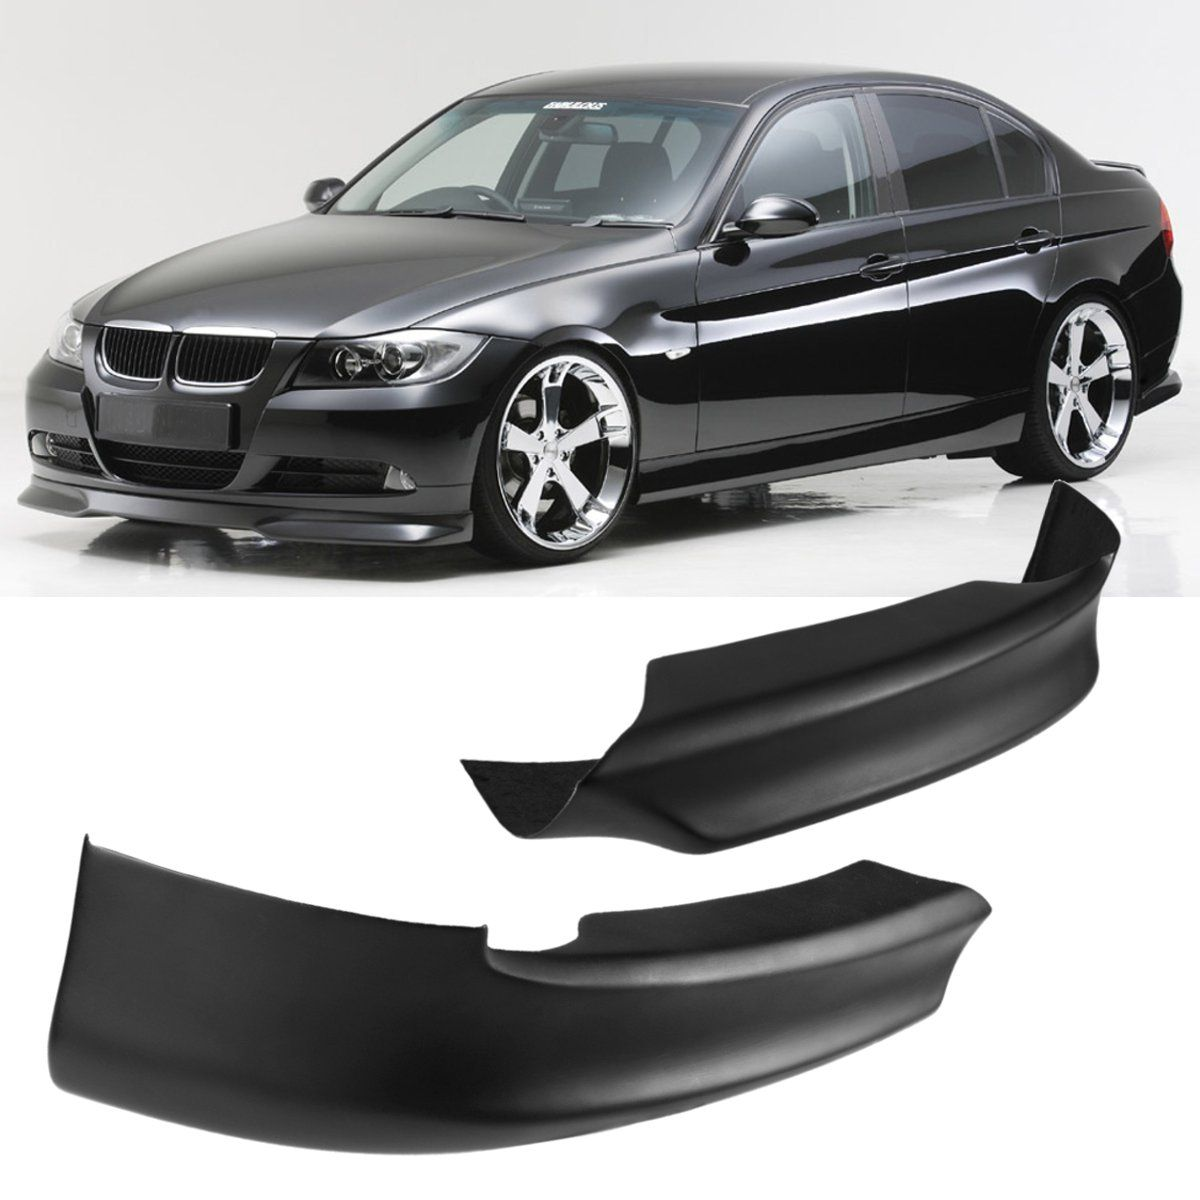 A Pair Front Bumper Lip Spoiler Splitter High quality For BMW E90 325i 335i 328i 330i 2005-2008